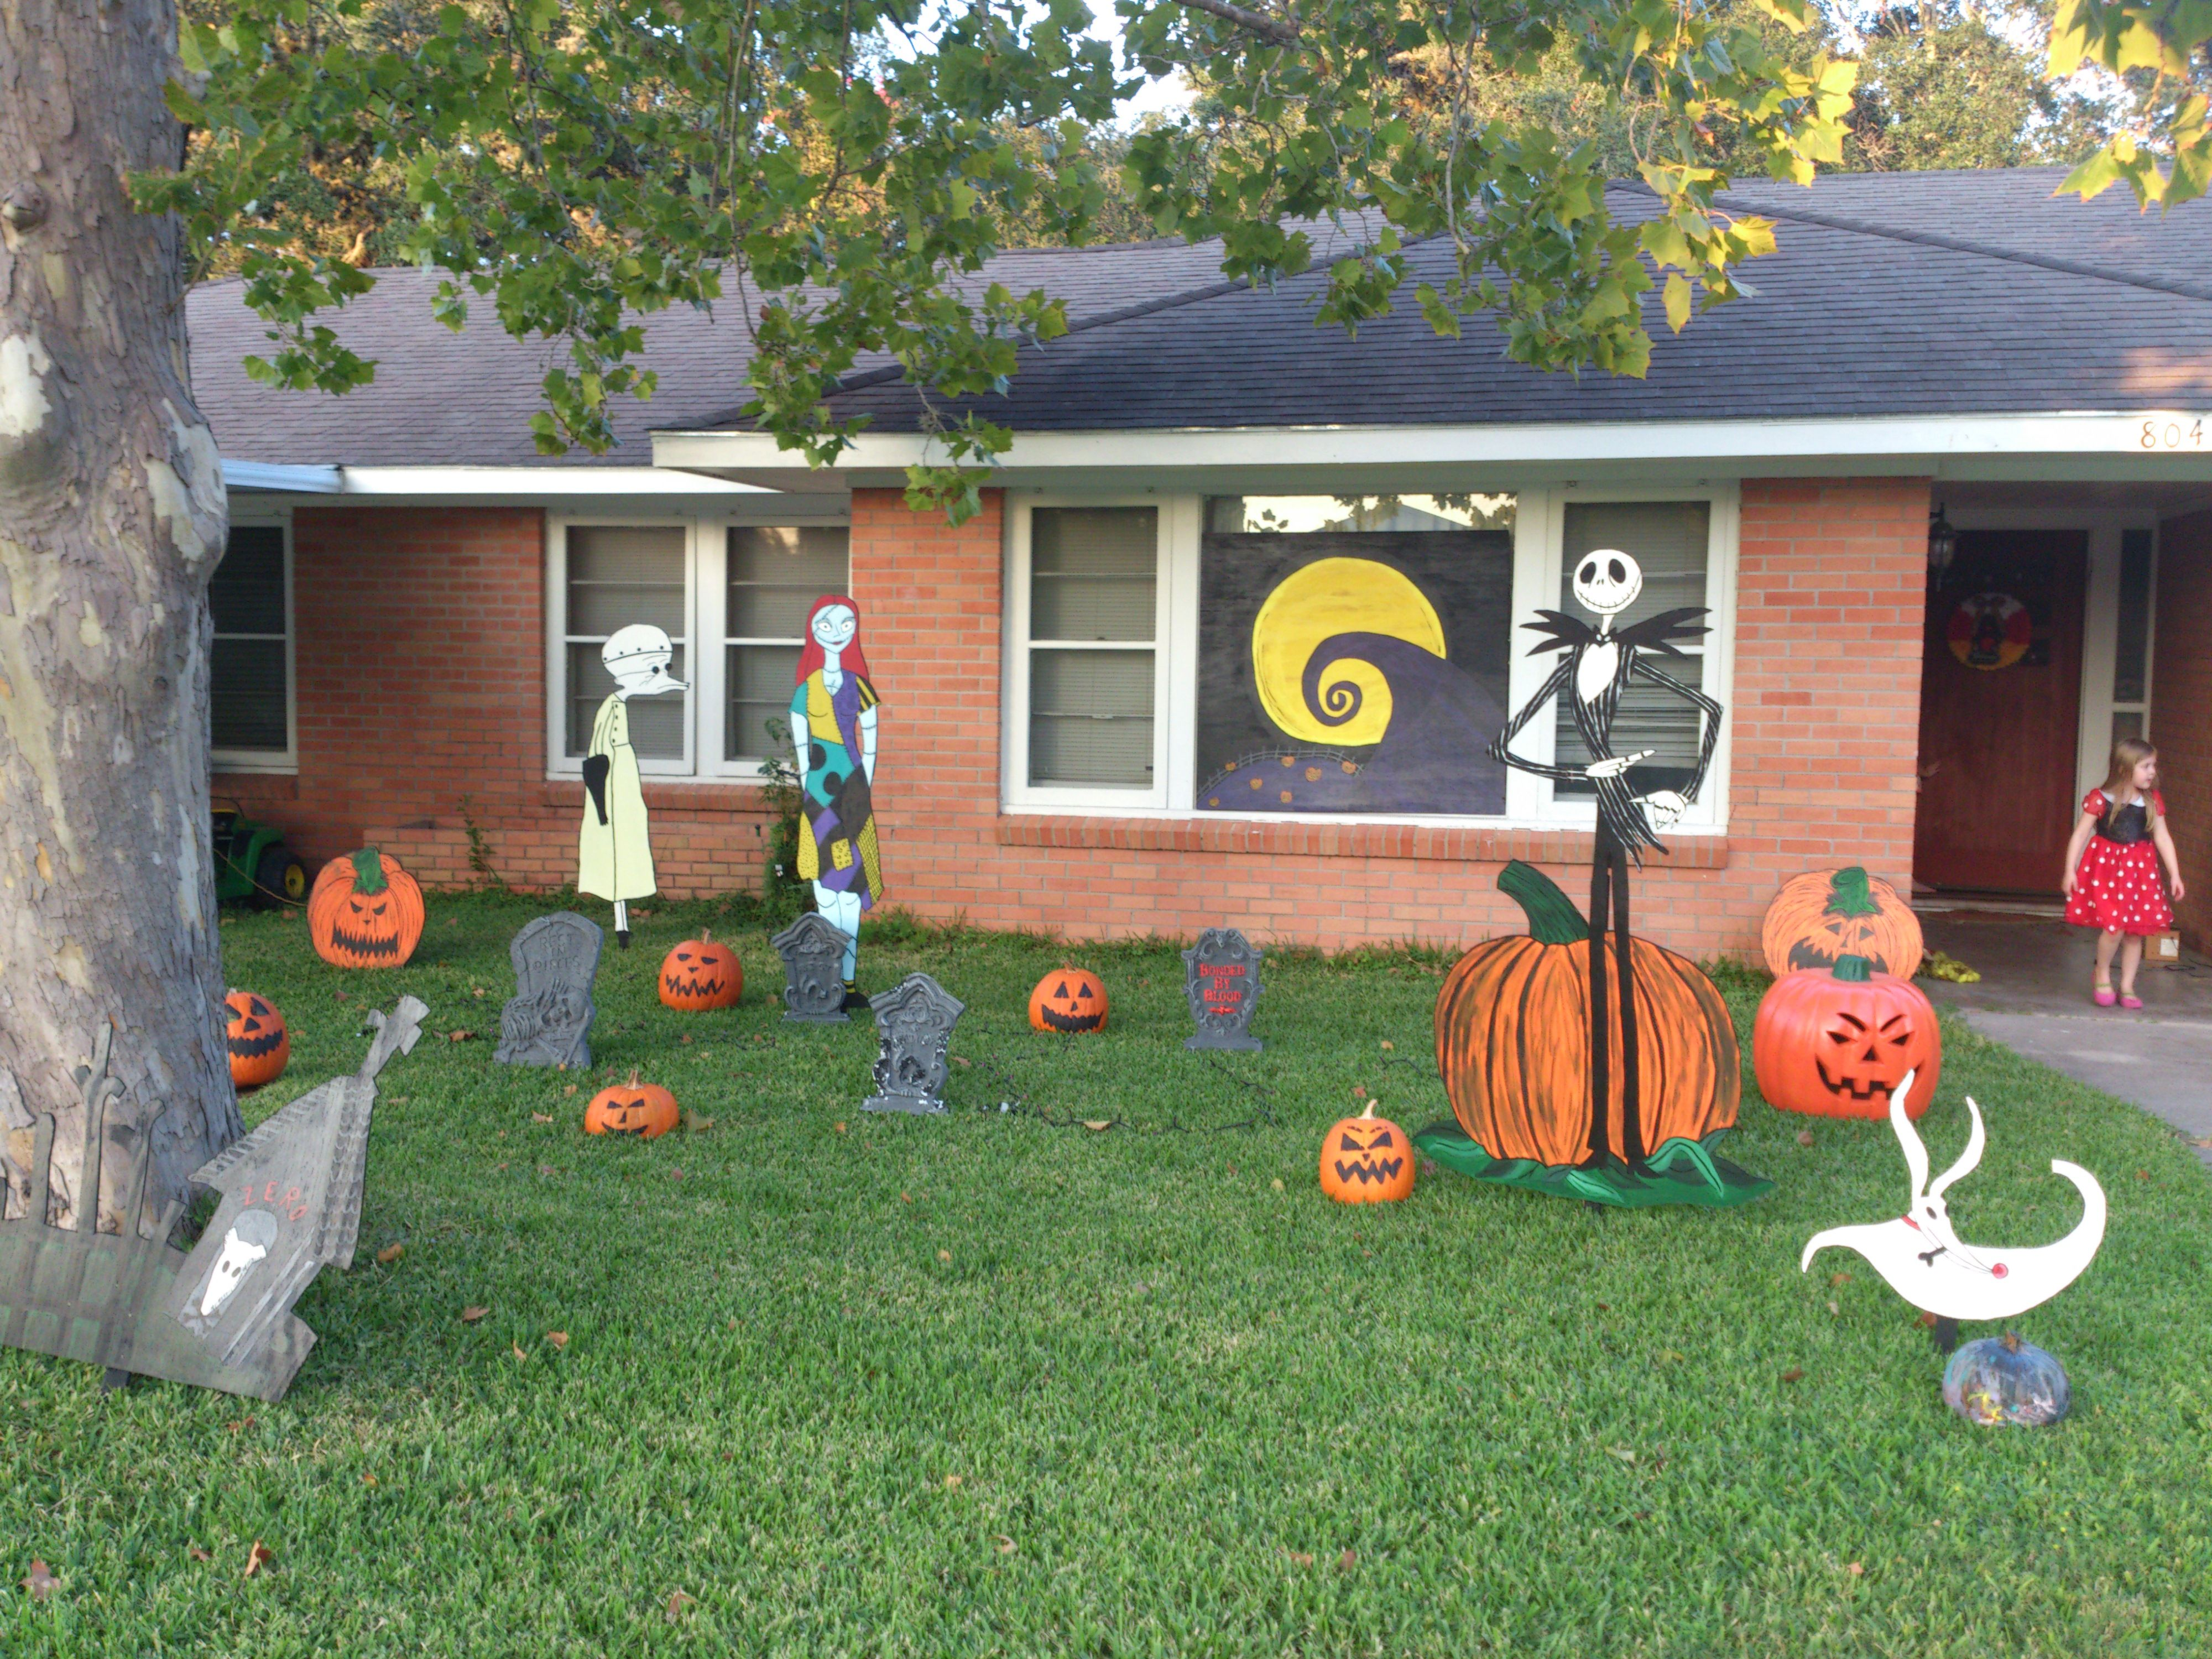 nightmare before christmas halloween yard art candaces yard art